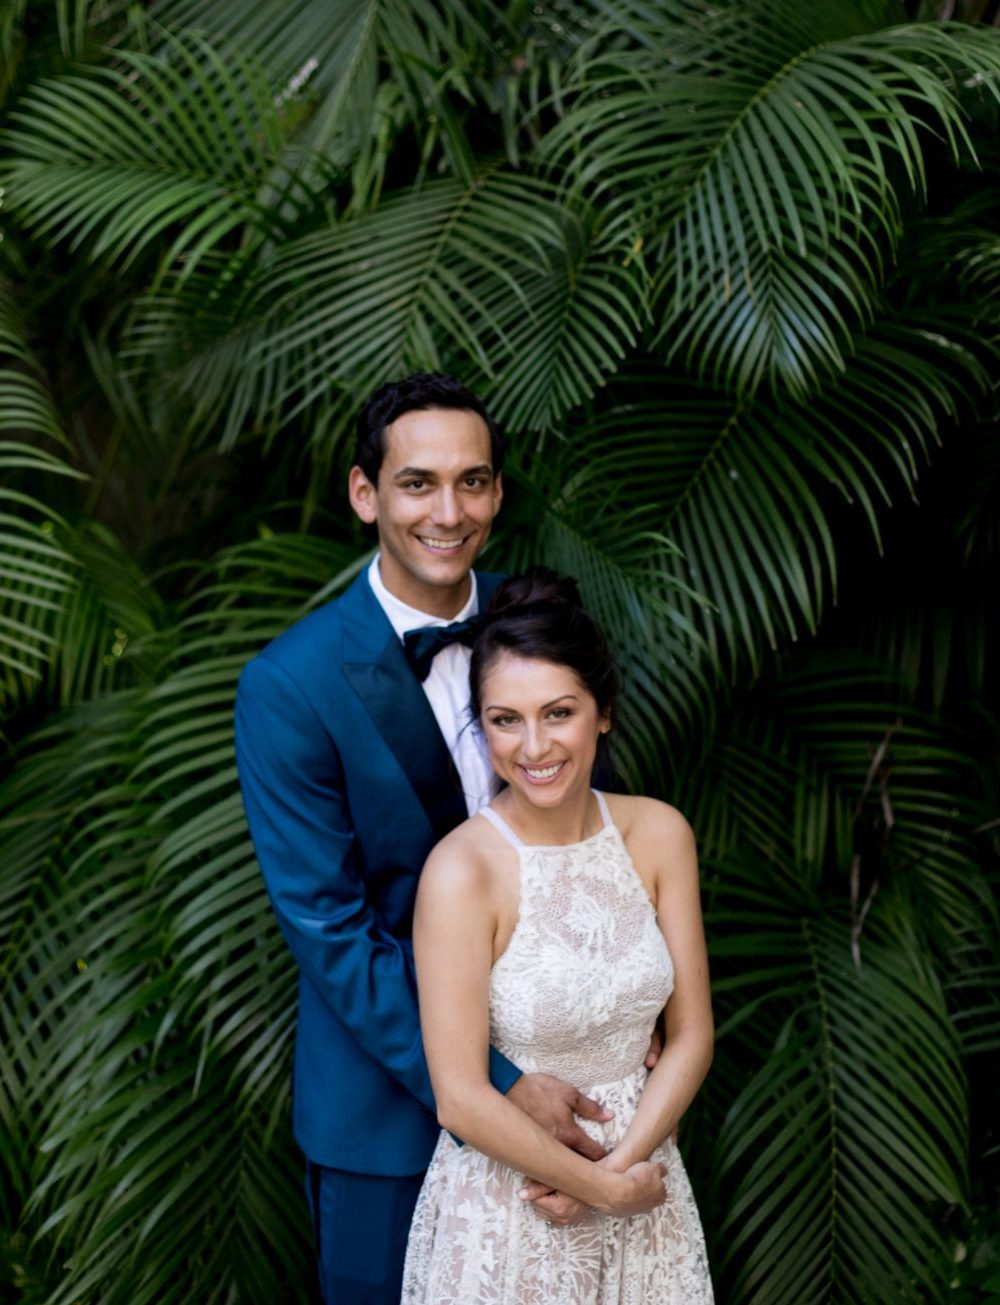 The bride and groom in a blue suit stand in front of jungle palm trees for a photo before the ceremony at this Sayulita destination wedding